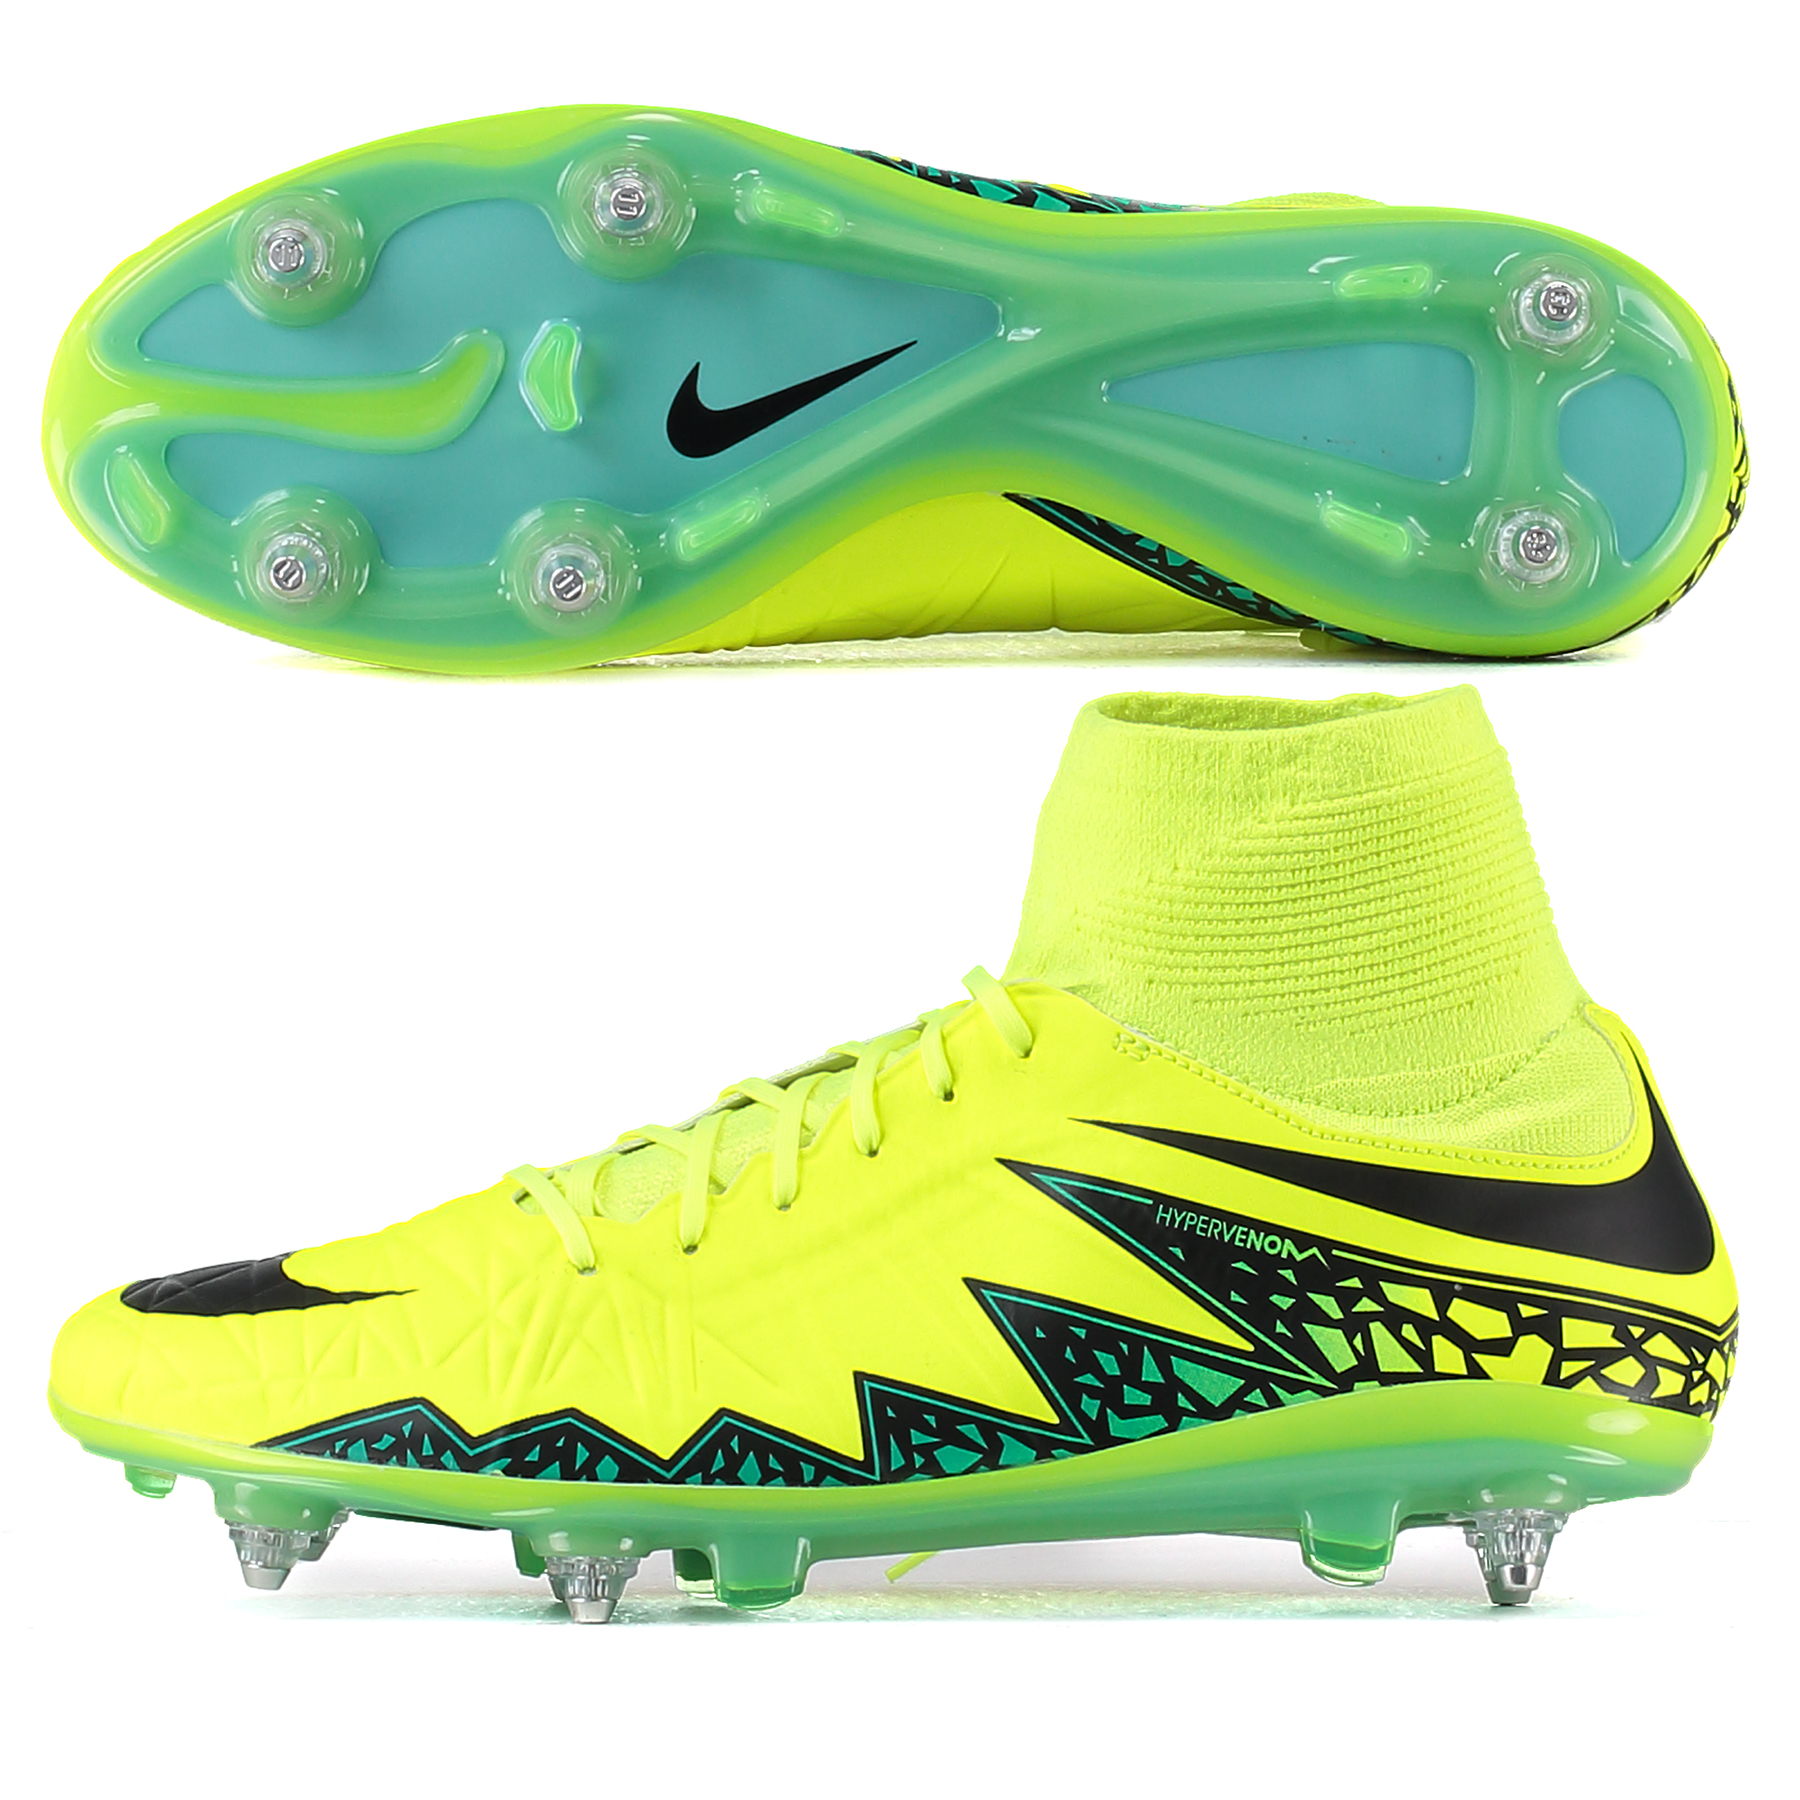 Buy Nike Hypervenom Rugby Boots - compare prices